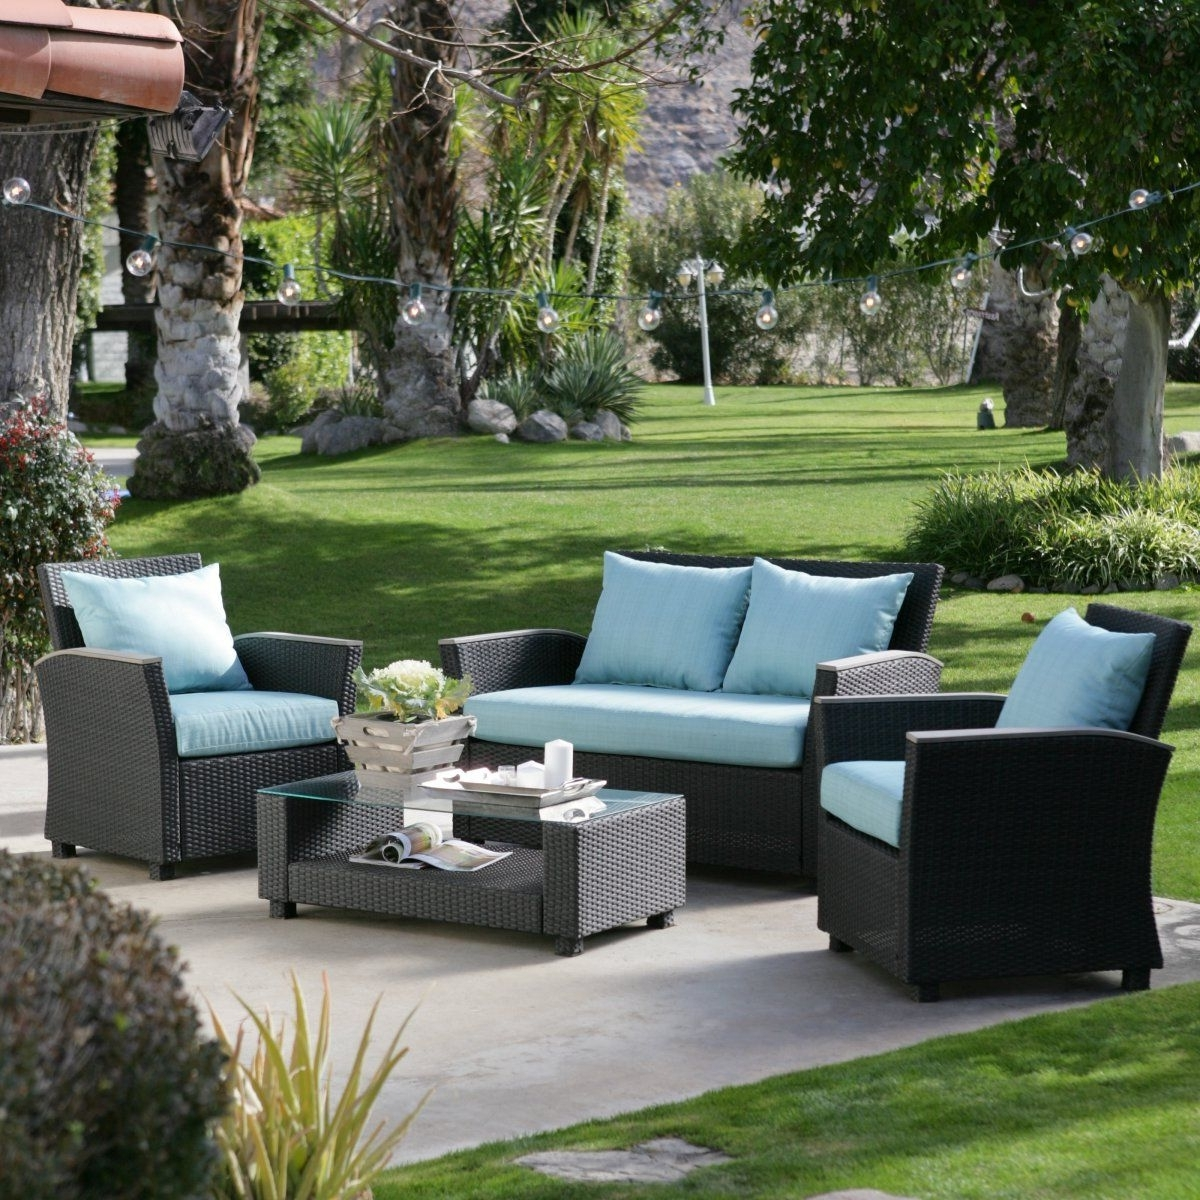 Most Current Hayneedle Patio Conversation Sets With $1300 Delphi All Weather Chocolate Wicker Conversation Set – Outdoor (View 15 of 15)